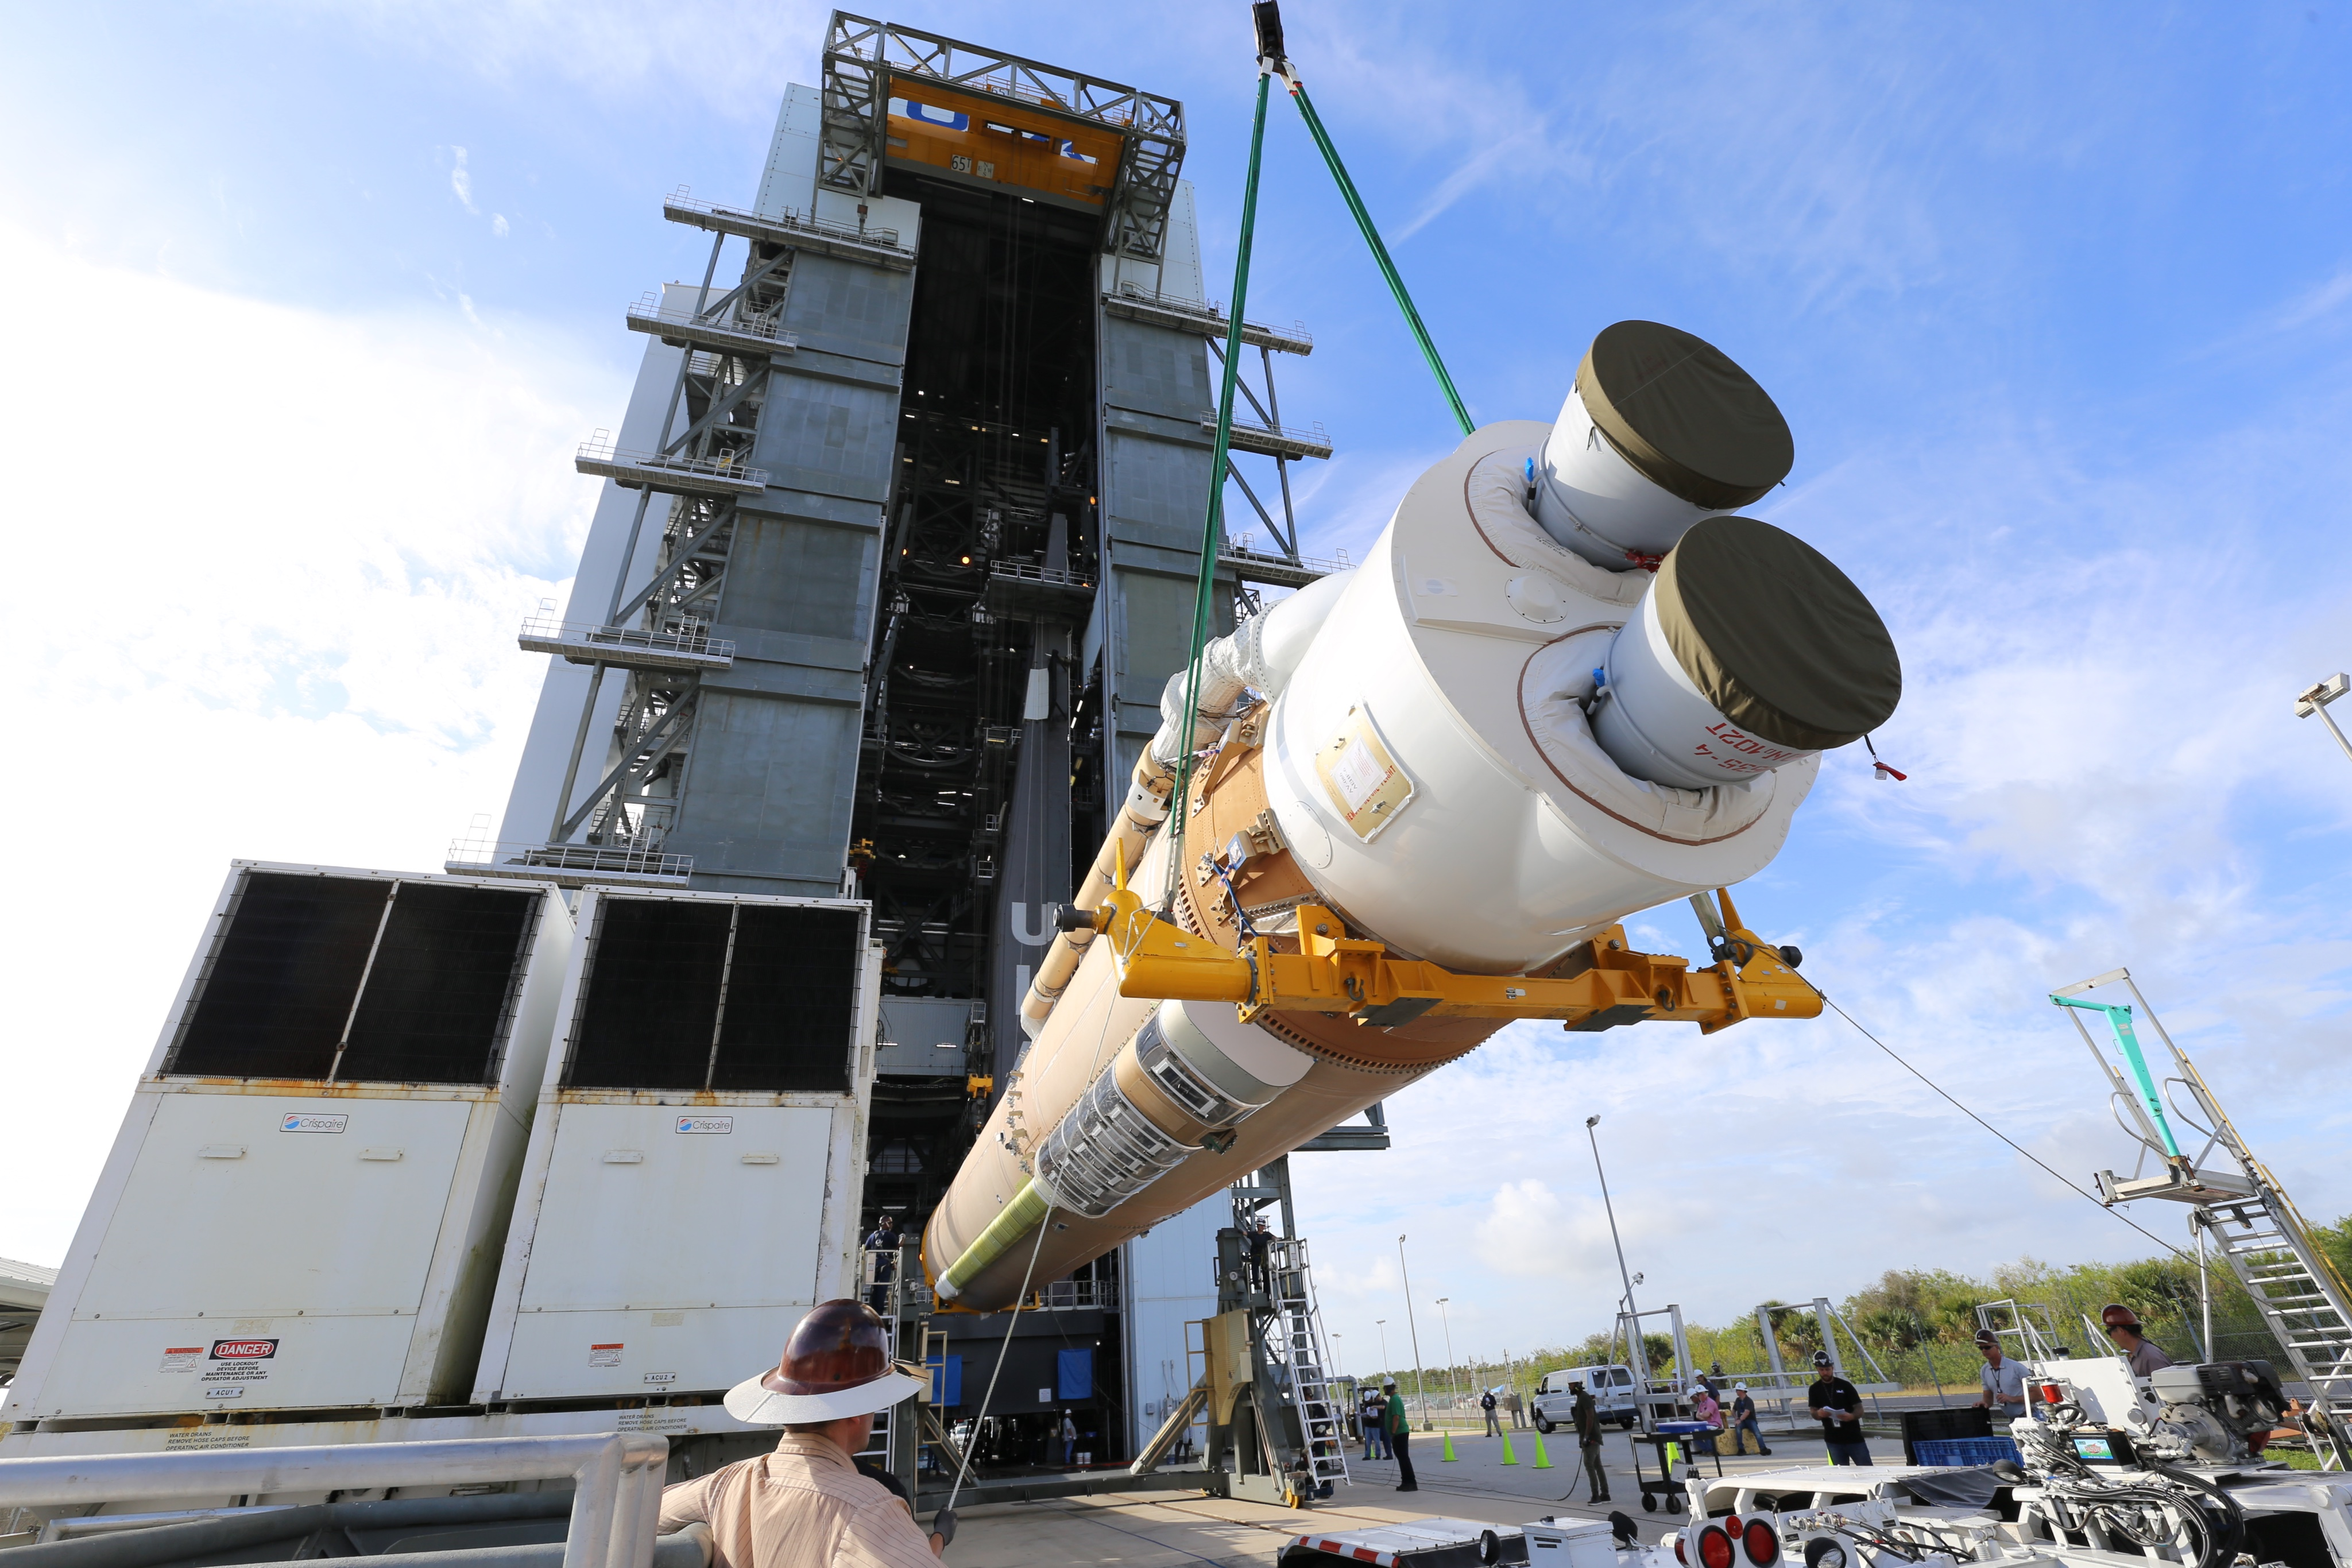 The first stage is lifted for Launch Vehicle on Stand (LVOS). Photo by United Launch Alliance